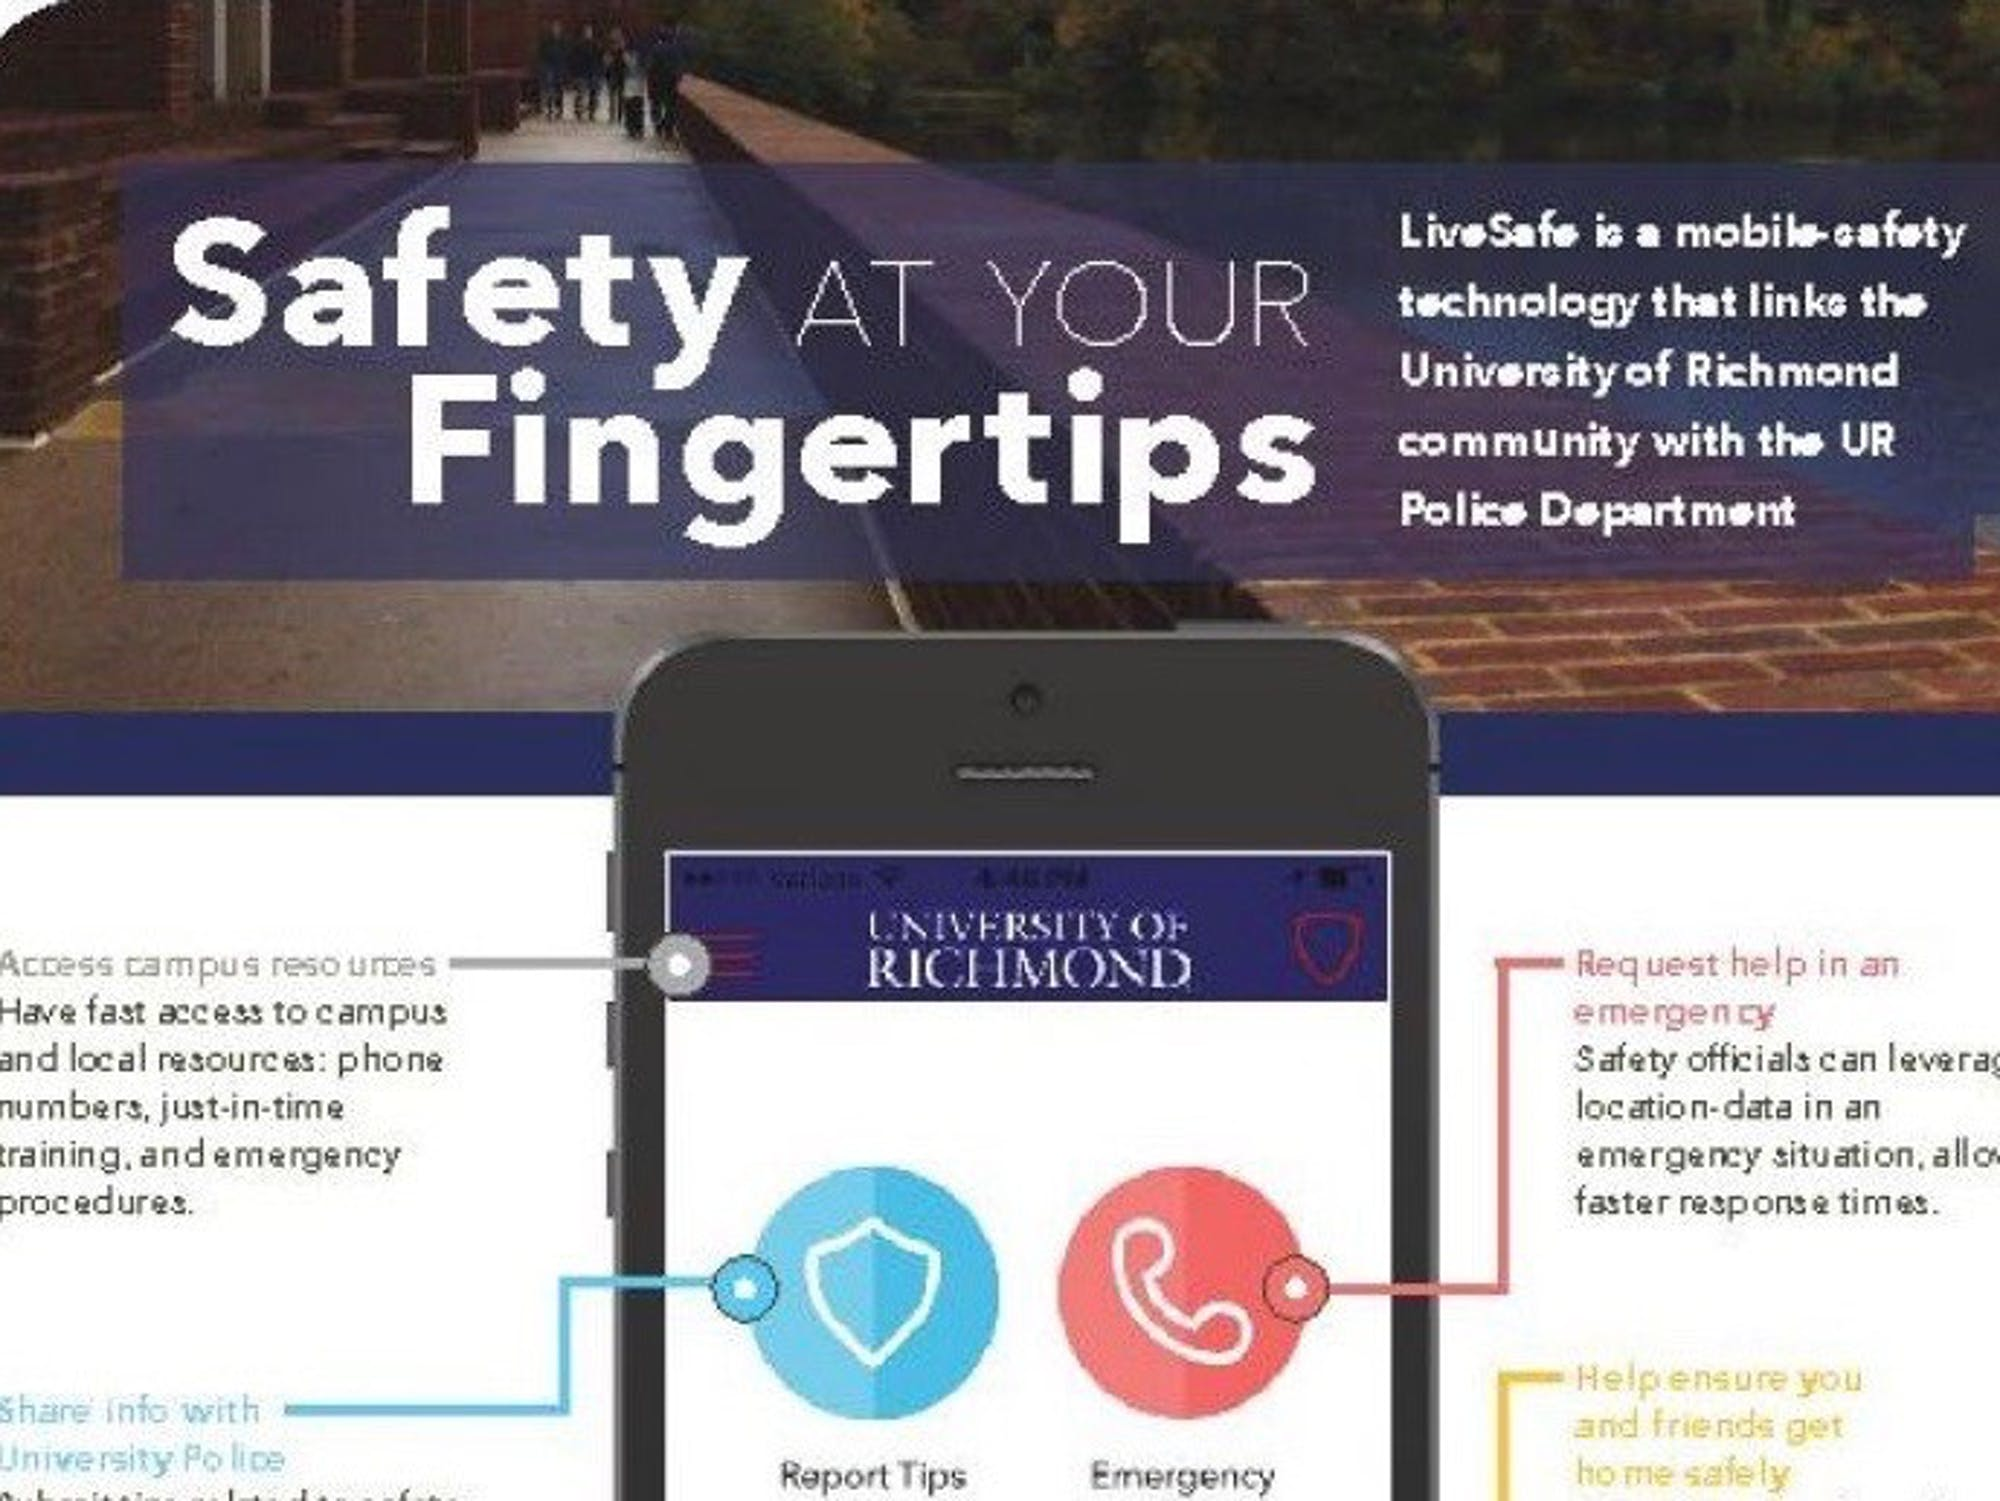 7793_safety_at_your_fingertipsf_1